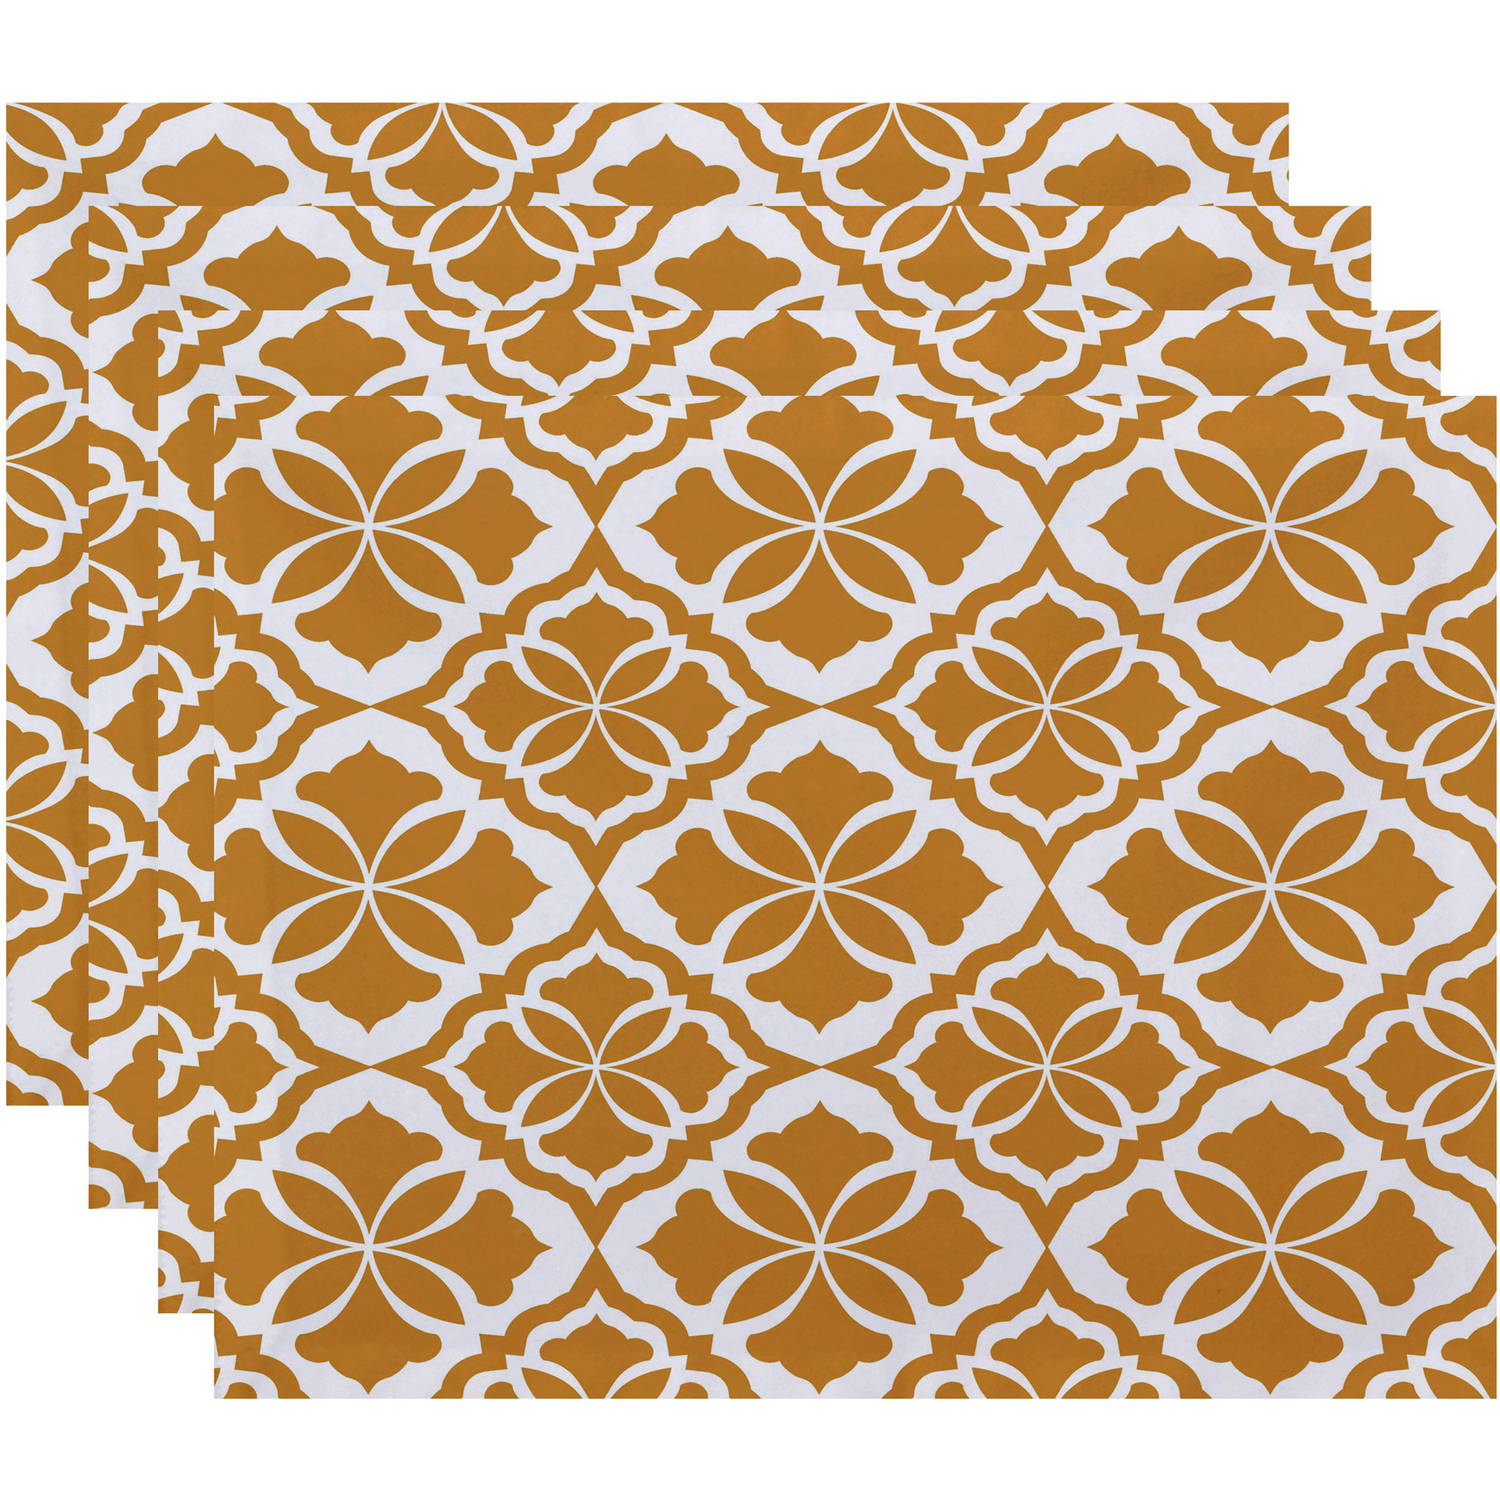 "Simply Daisy 18"" x 14"" Ceylon Geometric Print Placemat (Set of 4) by E By Design"